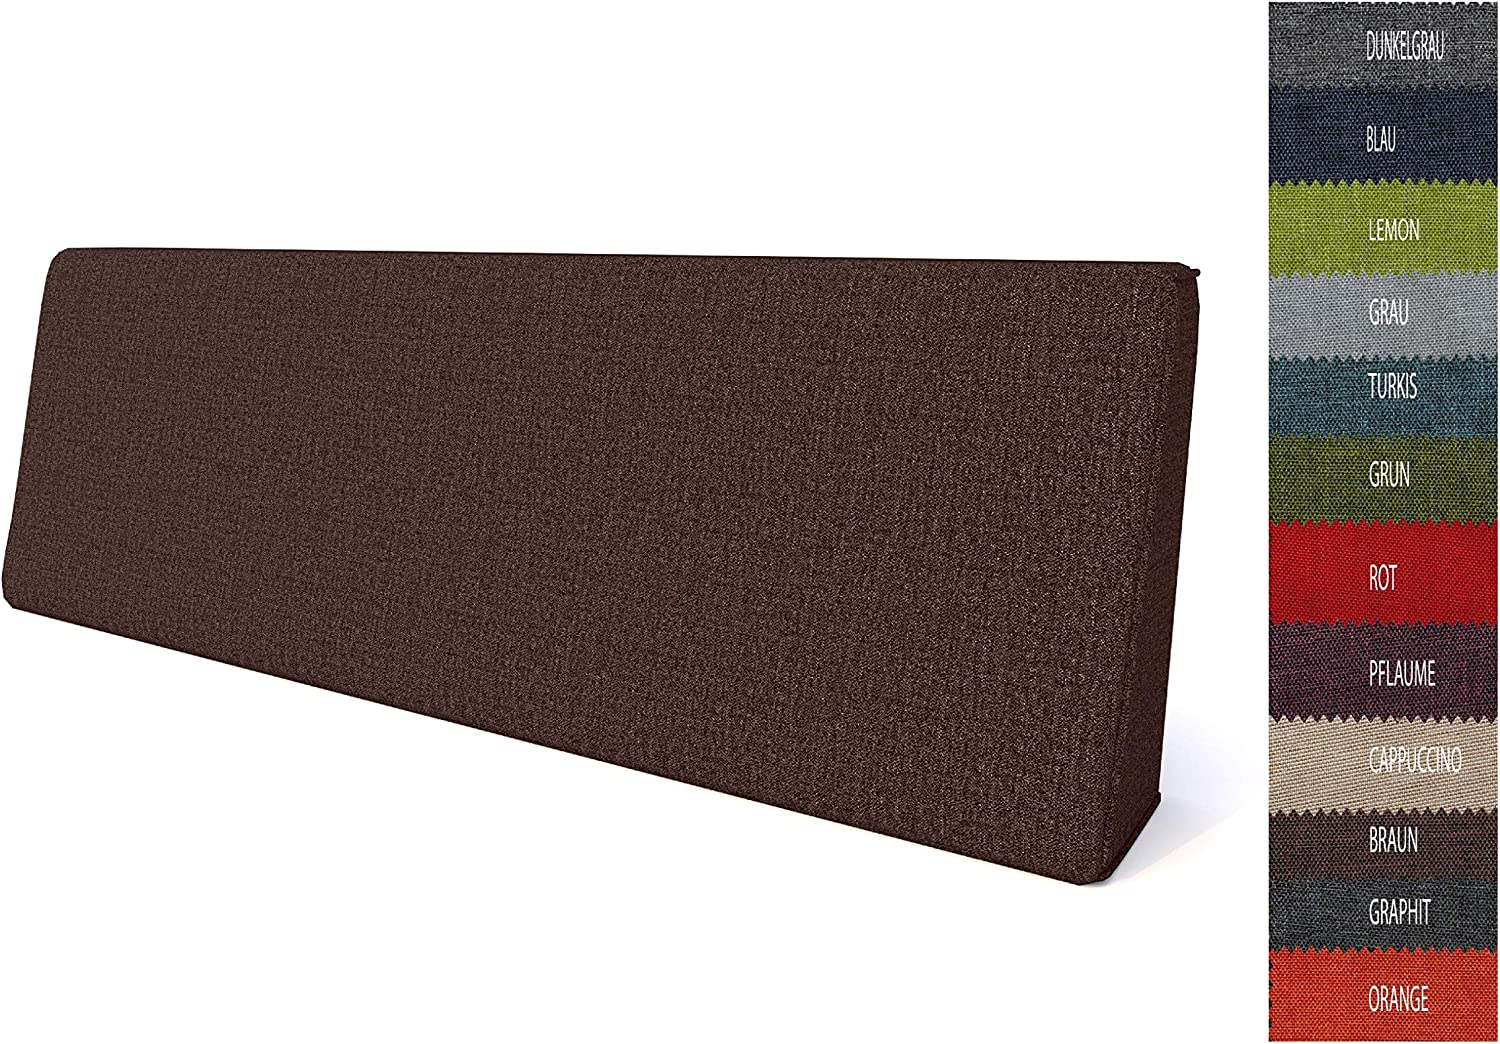 Pillows24 Pallet Cushions Set of 2 Pallet Cushions for Euro Pallets Pallet Cushions Indoor and Outdoor Available Made in EU